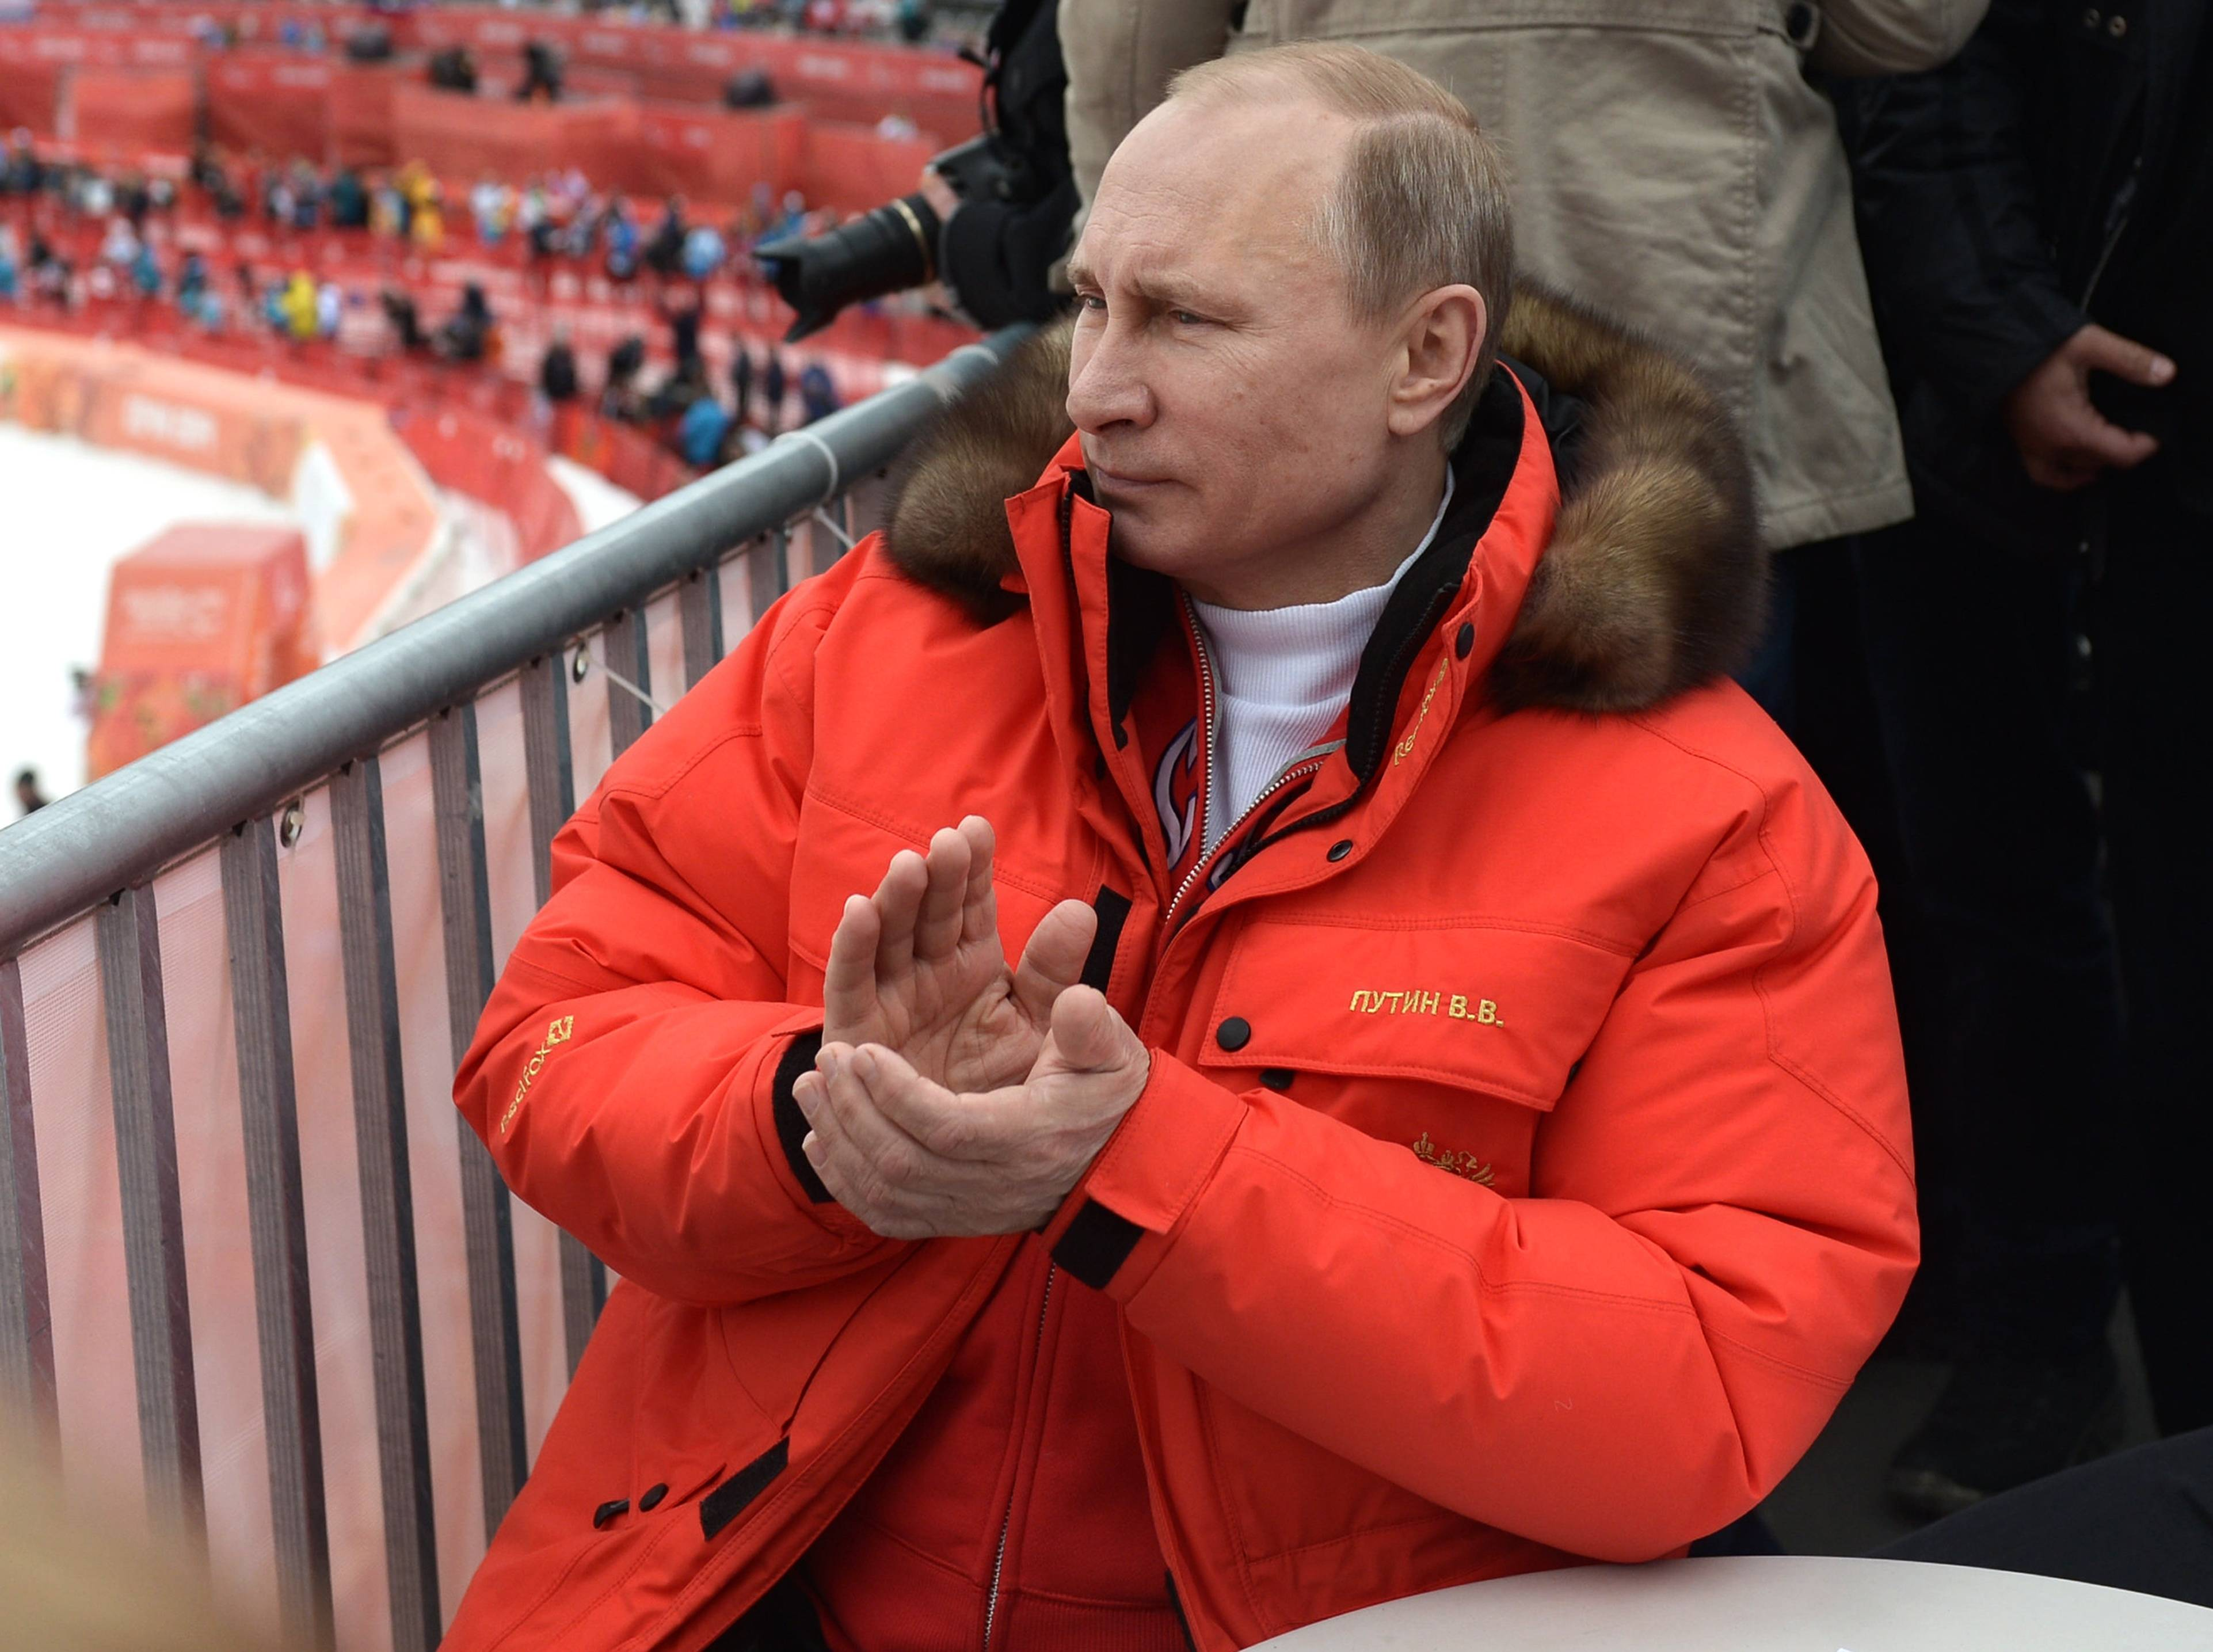 The 2014 Winter Paralympics ended Sunday in Sochi, Russia, the same site at which the Winter Olympics were held last month. In that time, the West's view of Russian President Vladimir Putin, seen here, has undergone a change.